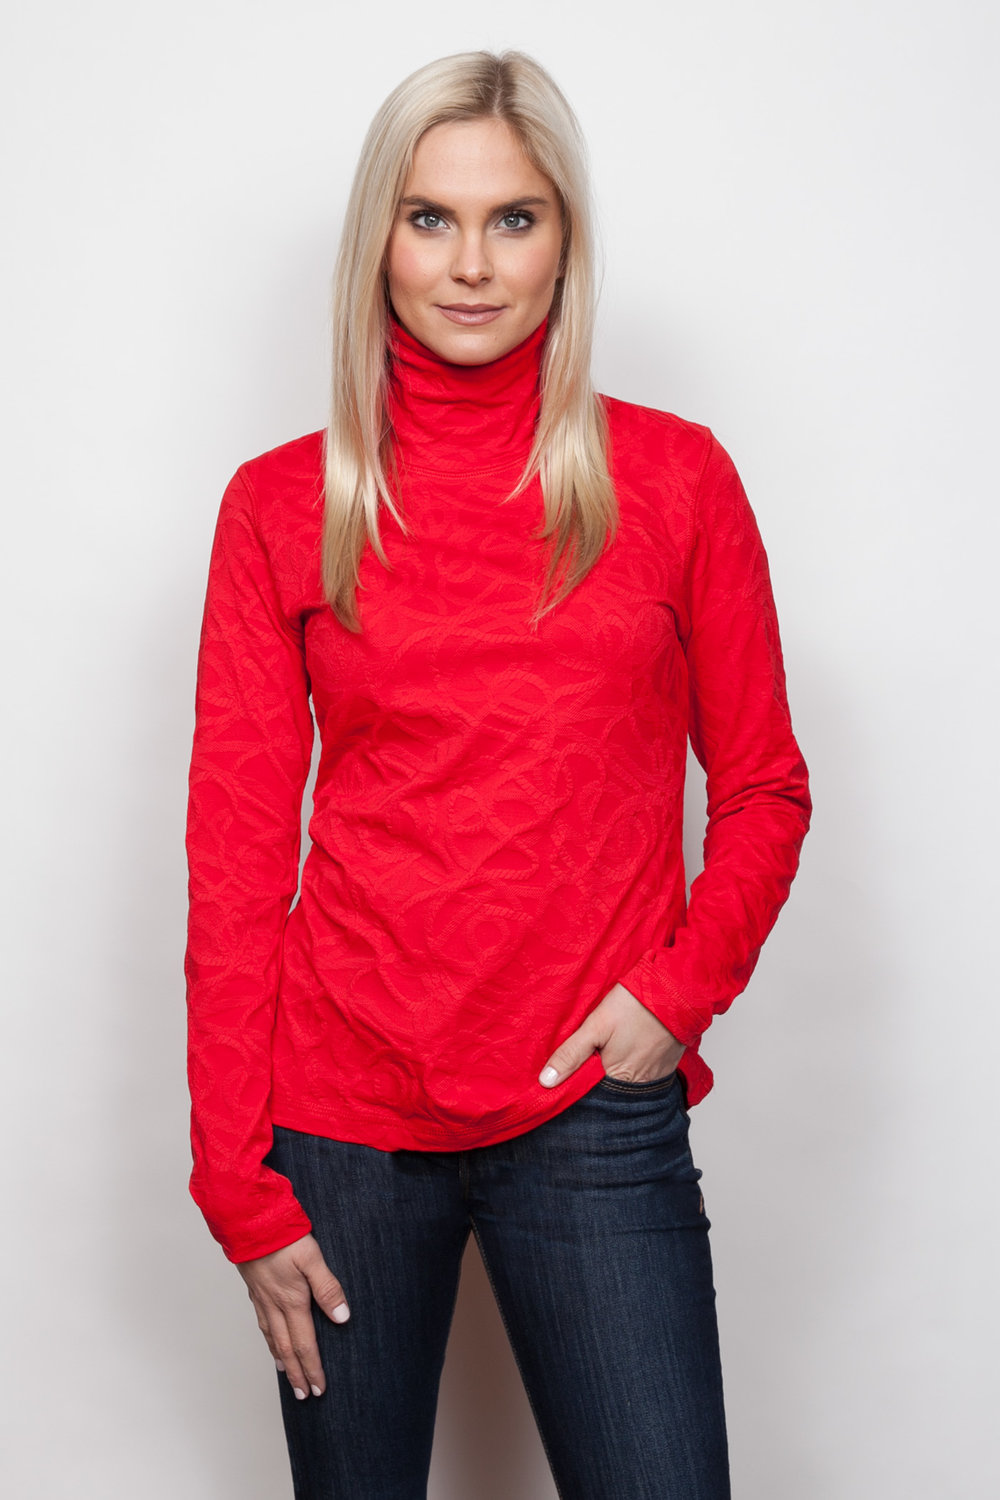 Copy of Style # 48433-18, p 9 </br>Braided Sport Jacq'd </br>Color: Cherry